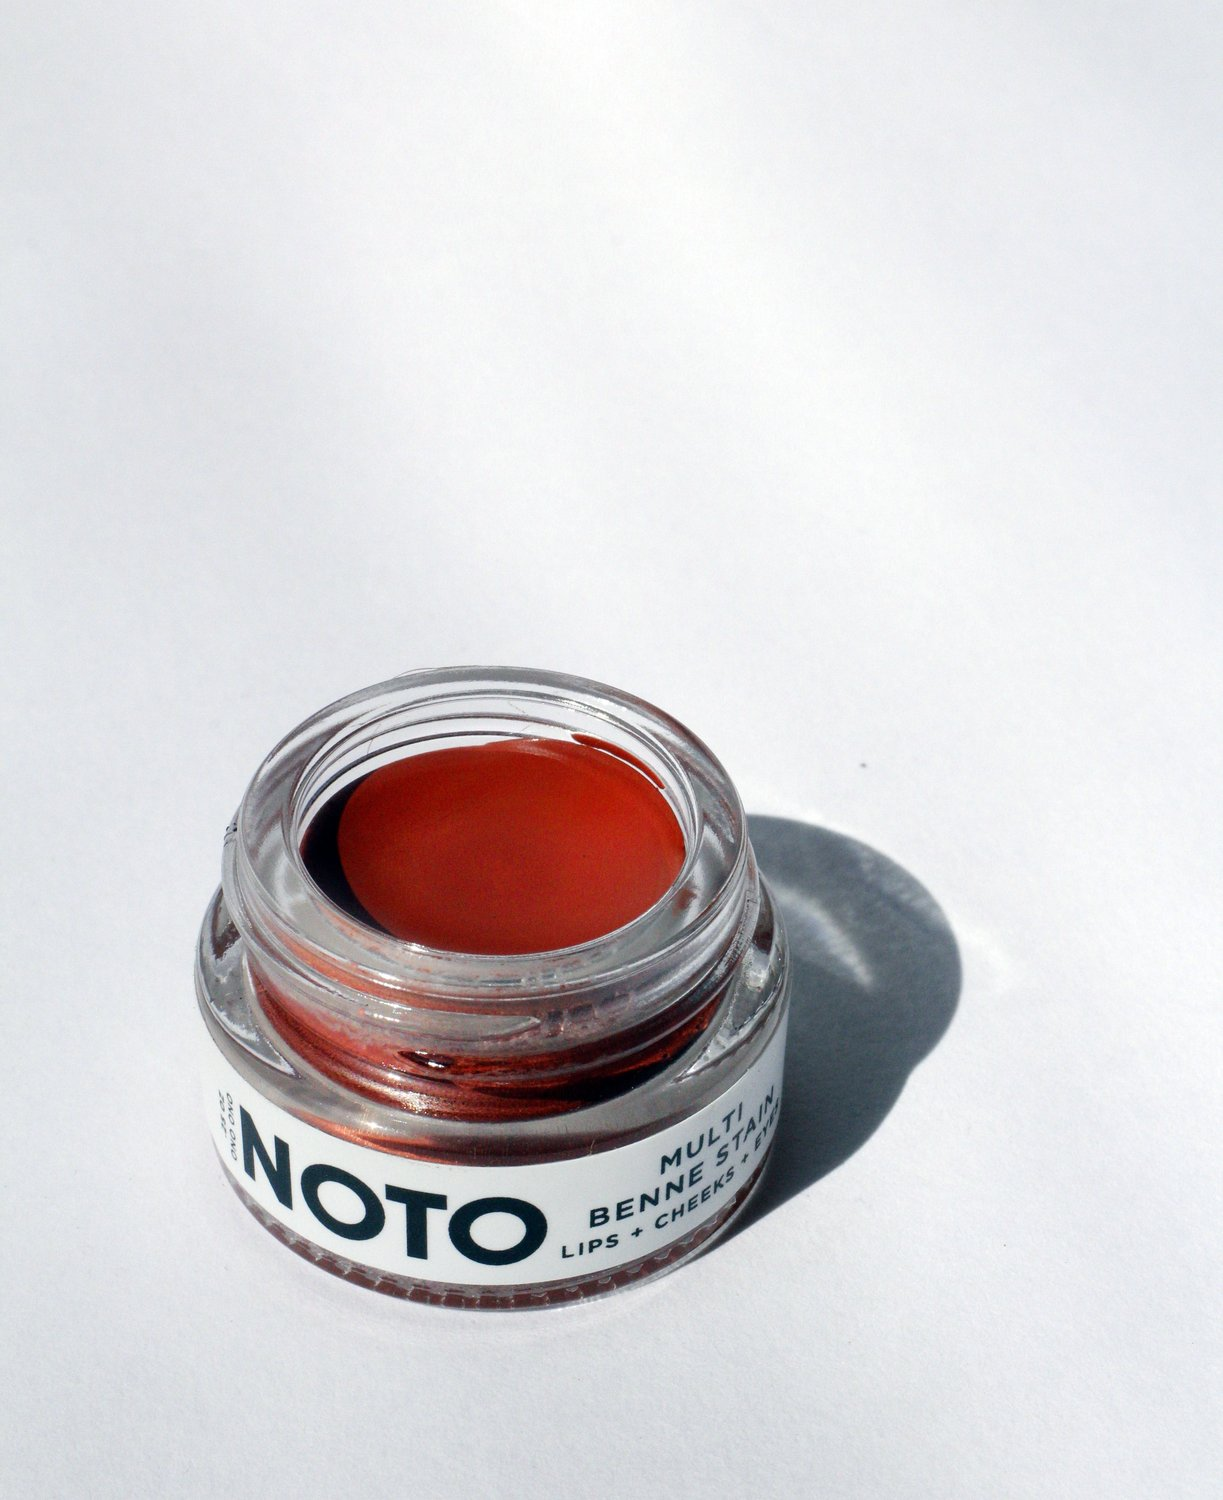 NOTO Multi-Benne Stain Pot in Ono Ono. Available at EASE Toronto.